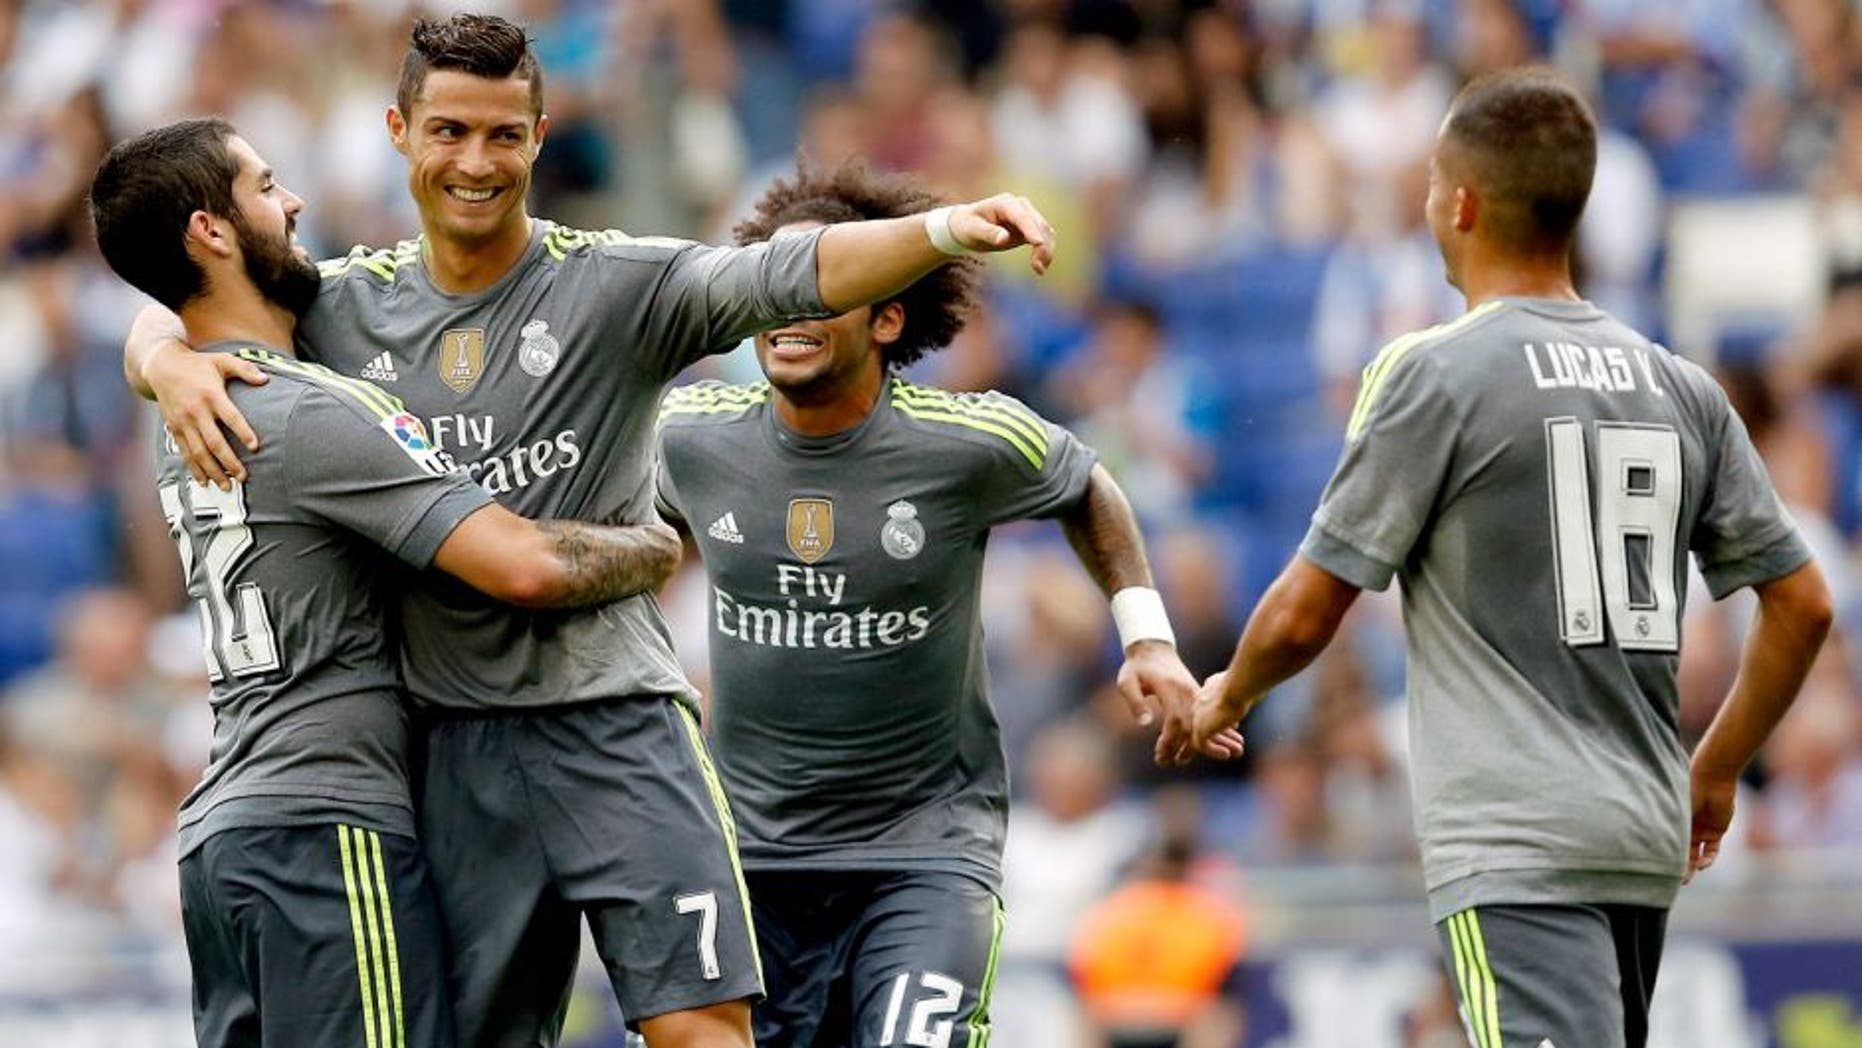 MADRID, SPAIN - AUGUST 29: Cristiano Ronaldo of Real Madrid celebrates whit his teammates after scoring a goal during the La Liga match between Espanyol and Real Madrid at Cornella-El Prat Stadium on September 12, 2015 in Barcelona, Spain. (Photo by Antonio Villalba/Real Madrid via Getty Images)